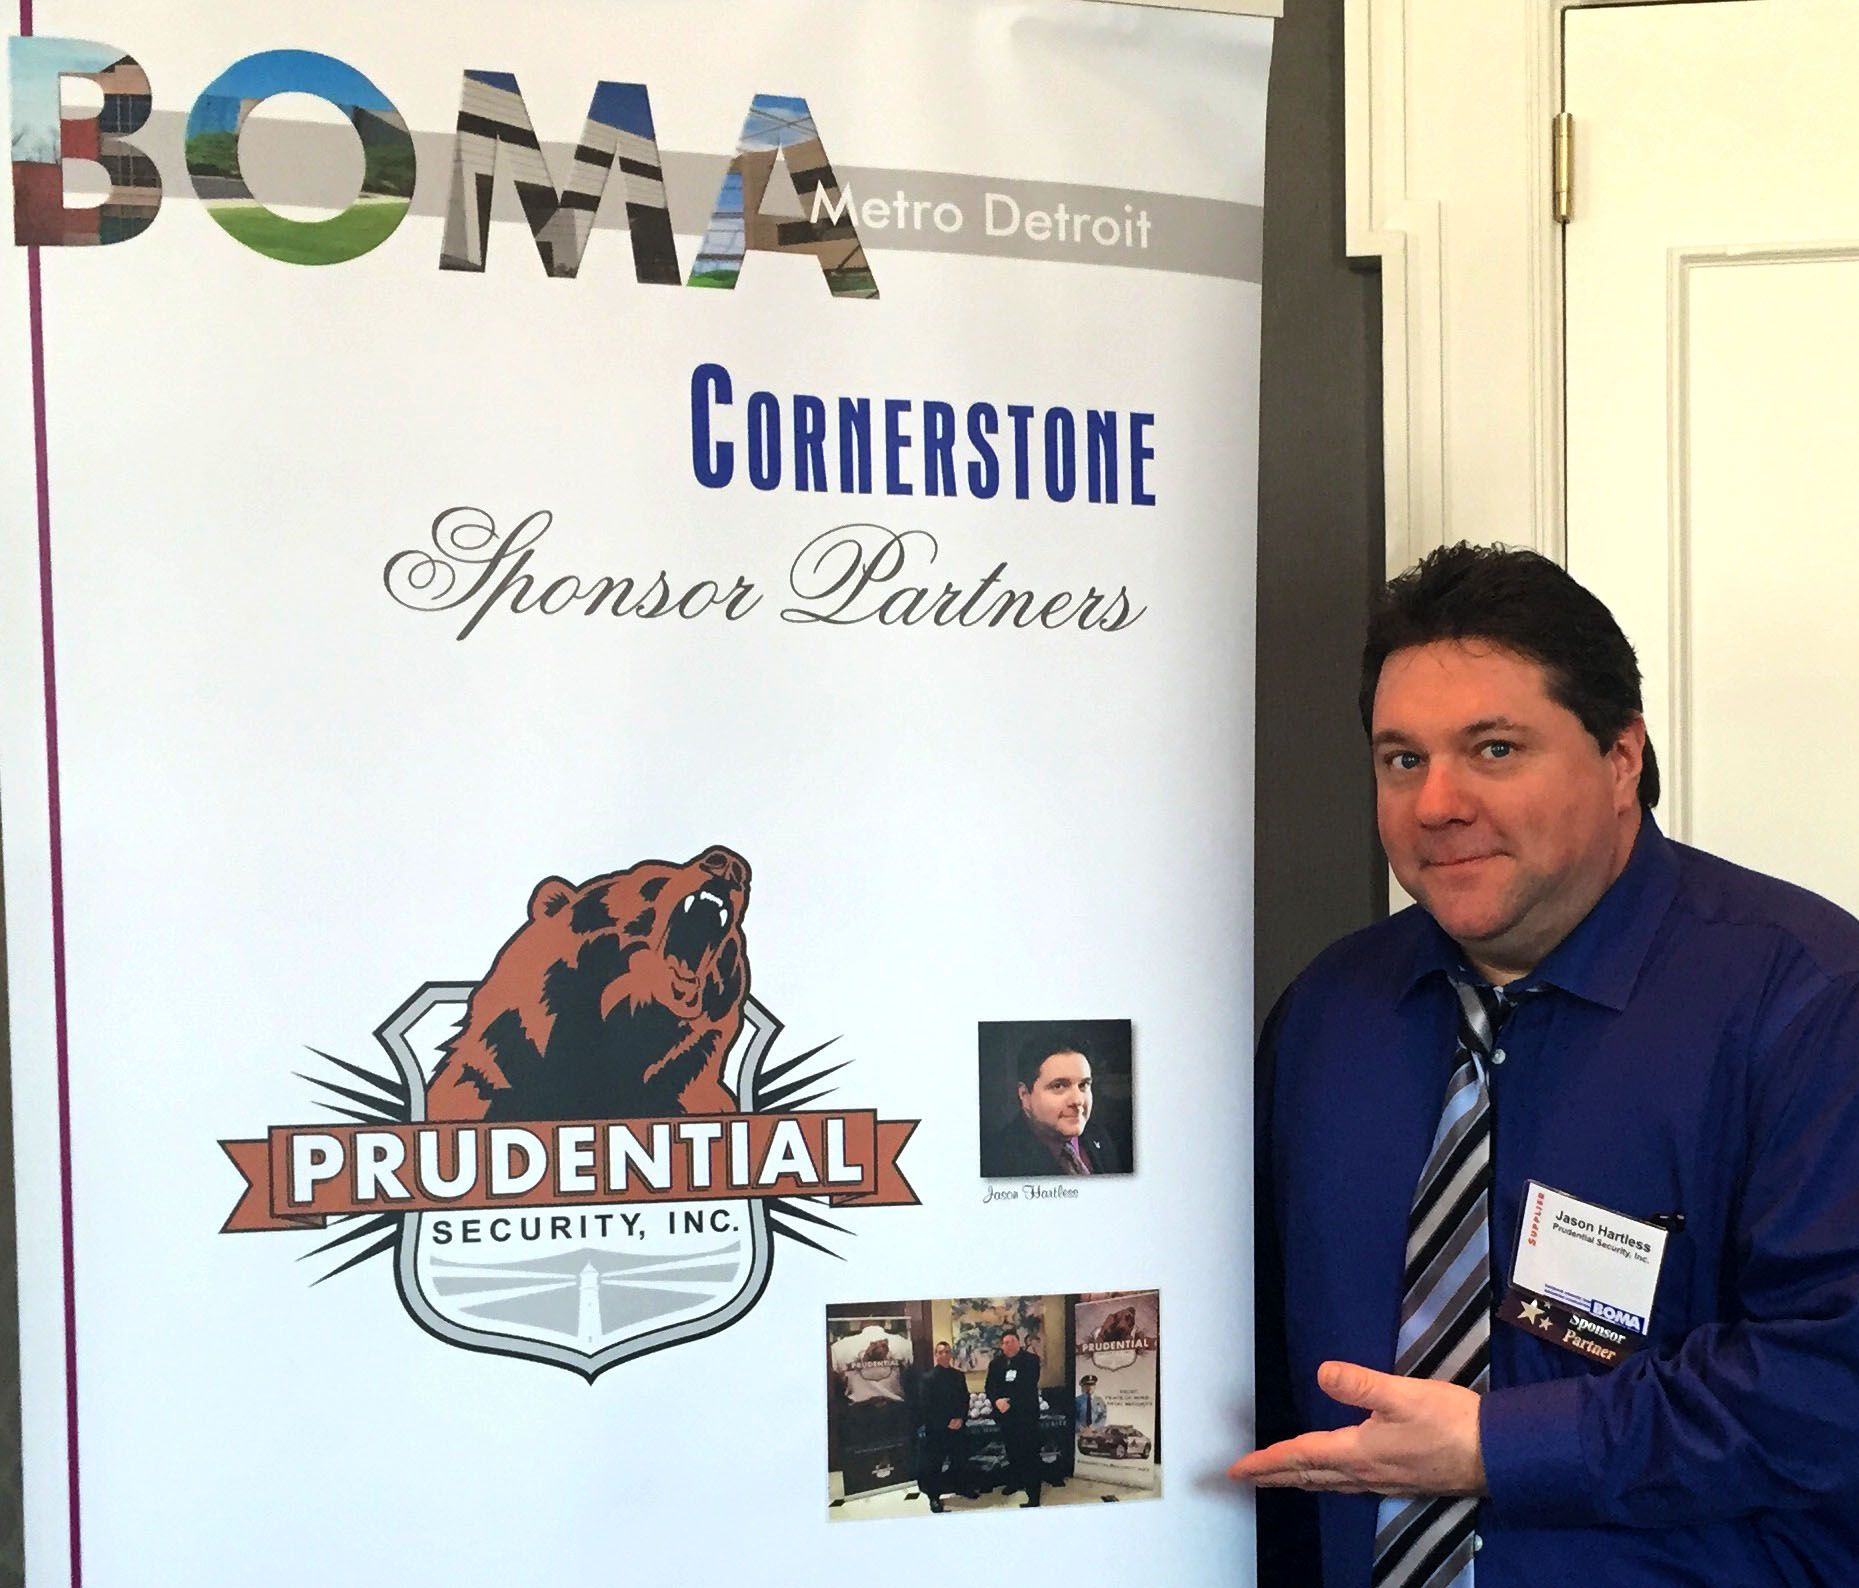 Jason Hartless attending the #2017EconomicForecast, held jointly with #BOMA, #IFMA, #IREM, #CREW & #SMPS at the historic #DearbornInn #PrudentialSecurity #Security #SecurityGuard #SecurityOfficer